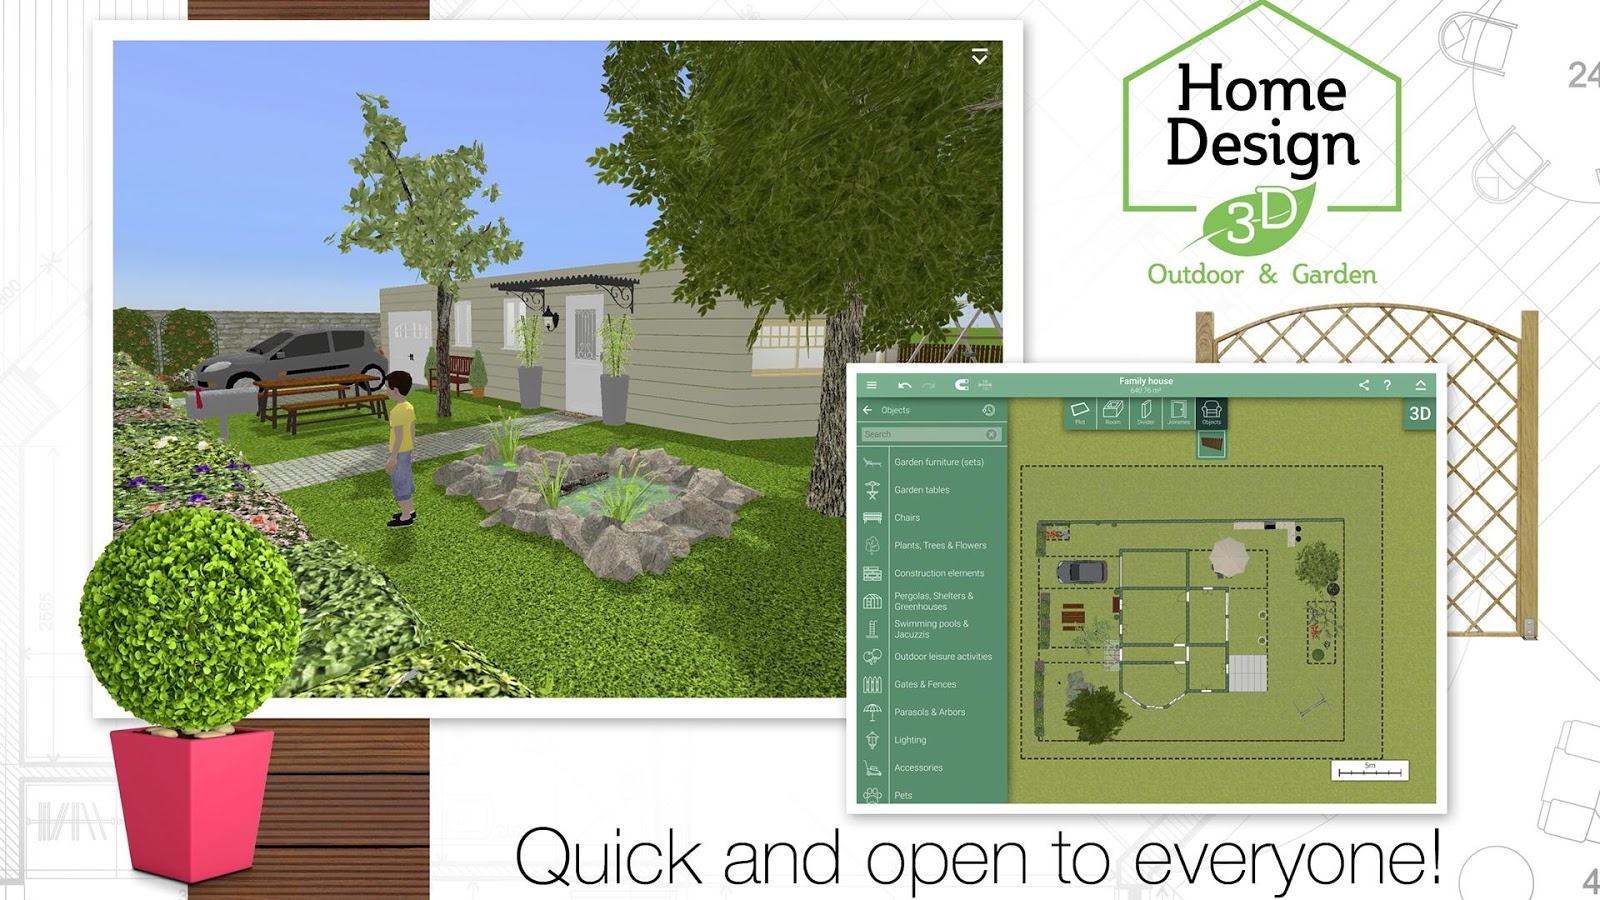 Home design 3d outdoor garden android apps on google play for Home design free app